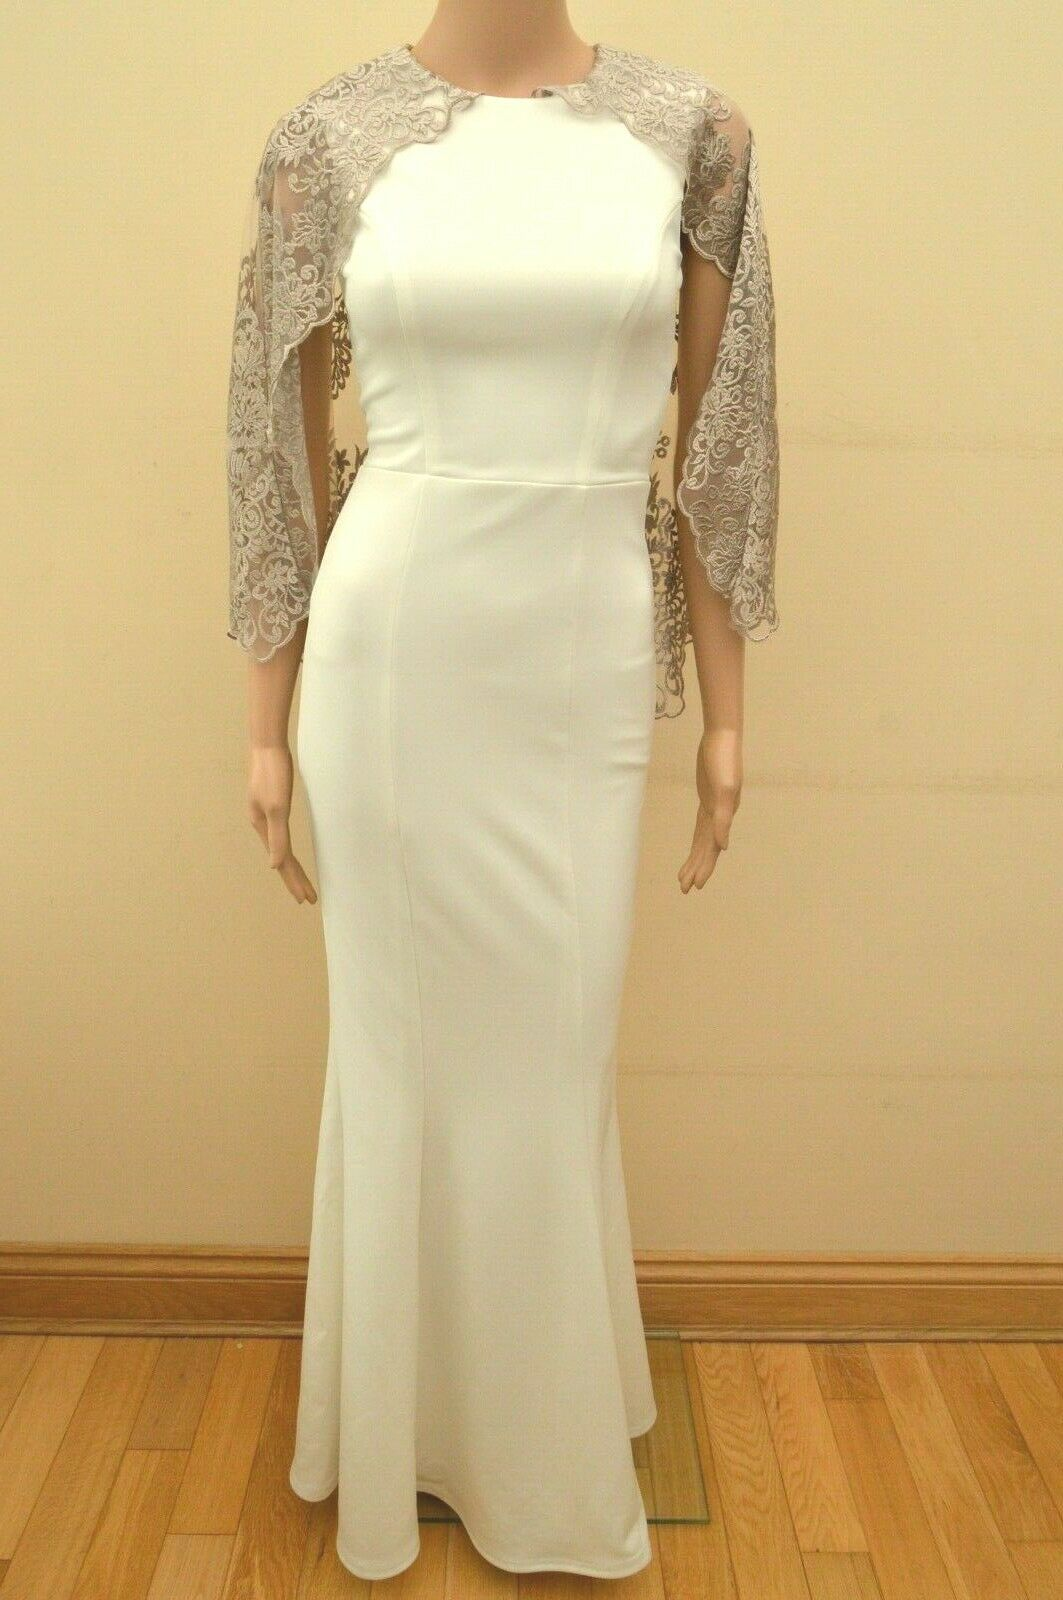 New LIPSY EXCLUSIVE Ivory Weiß Gorgie Cape Maxi Dress Sz UK 6